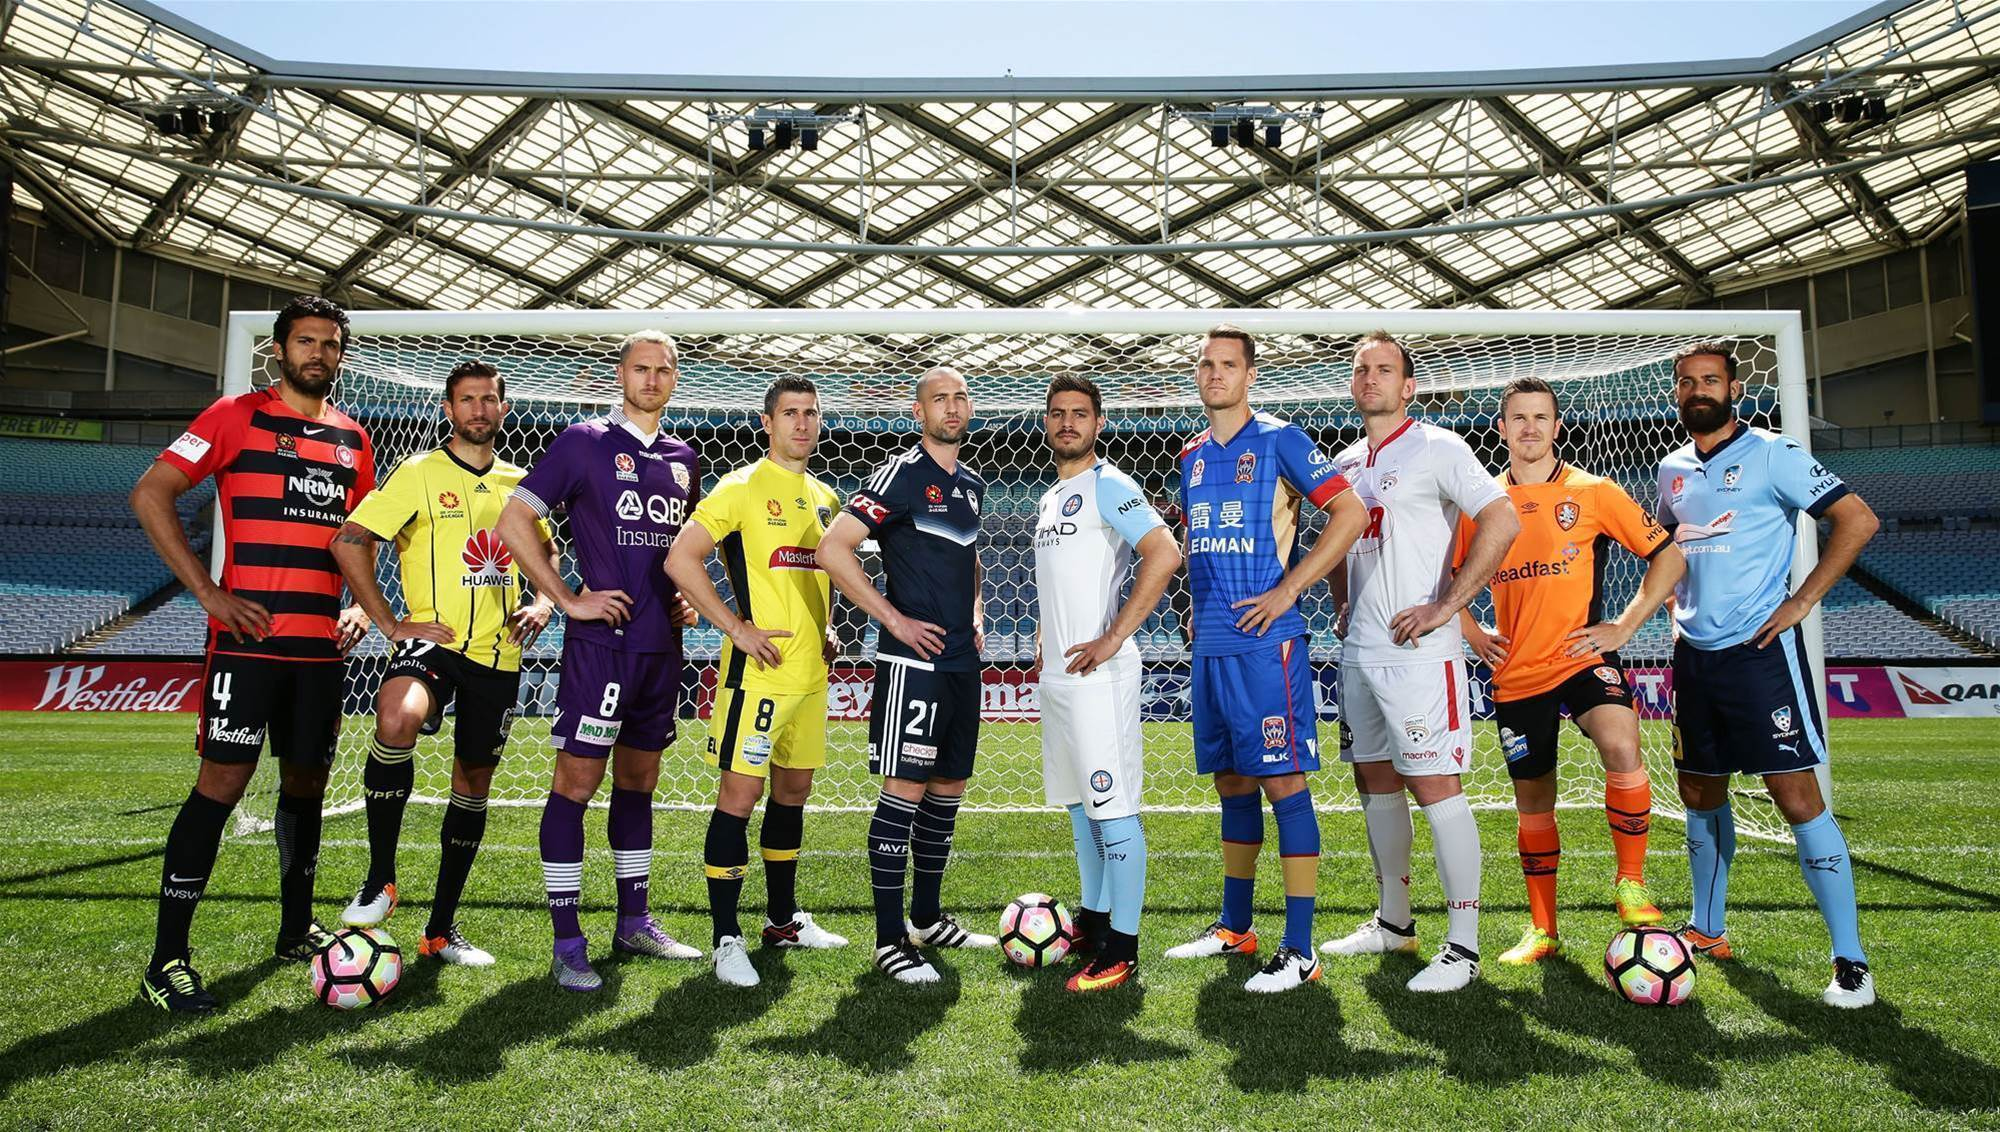 A-League: 'Two new teams in 2018/19'